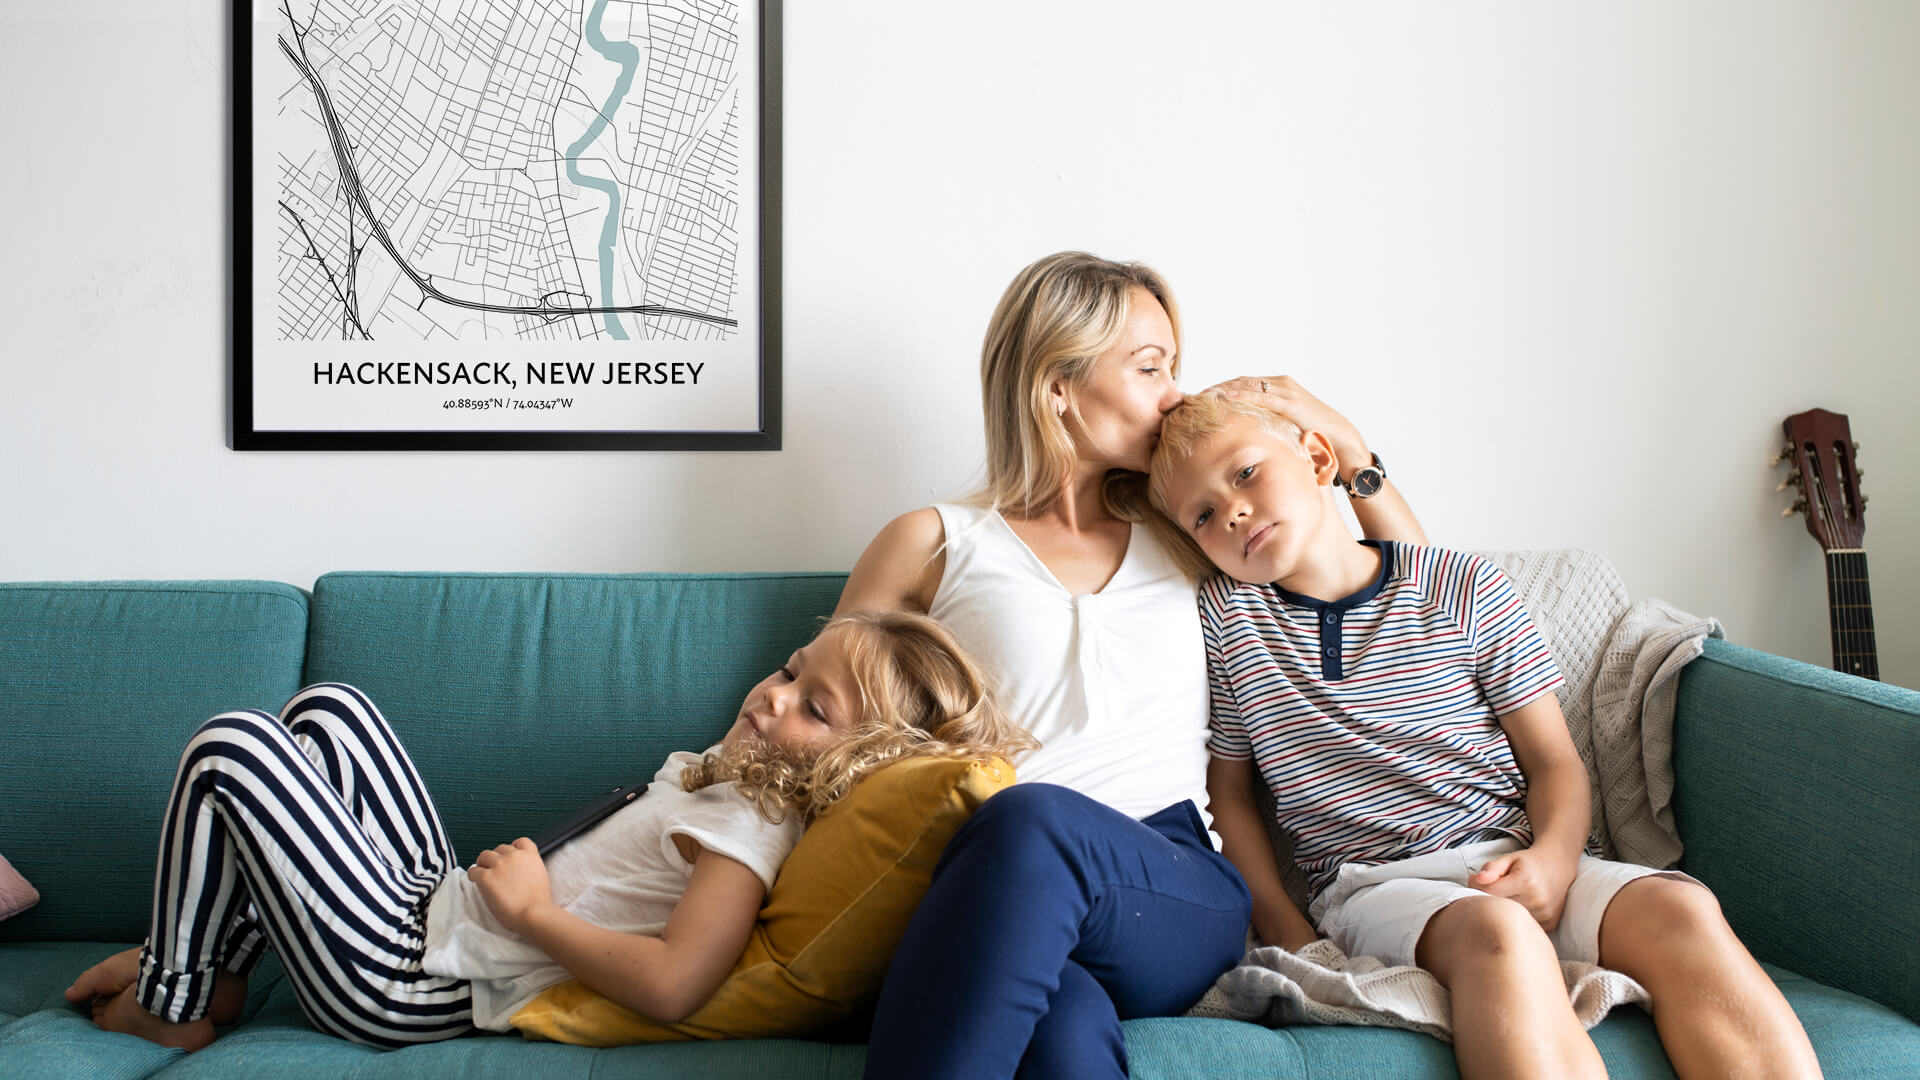 Hackensack map poster